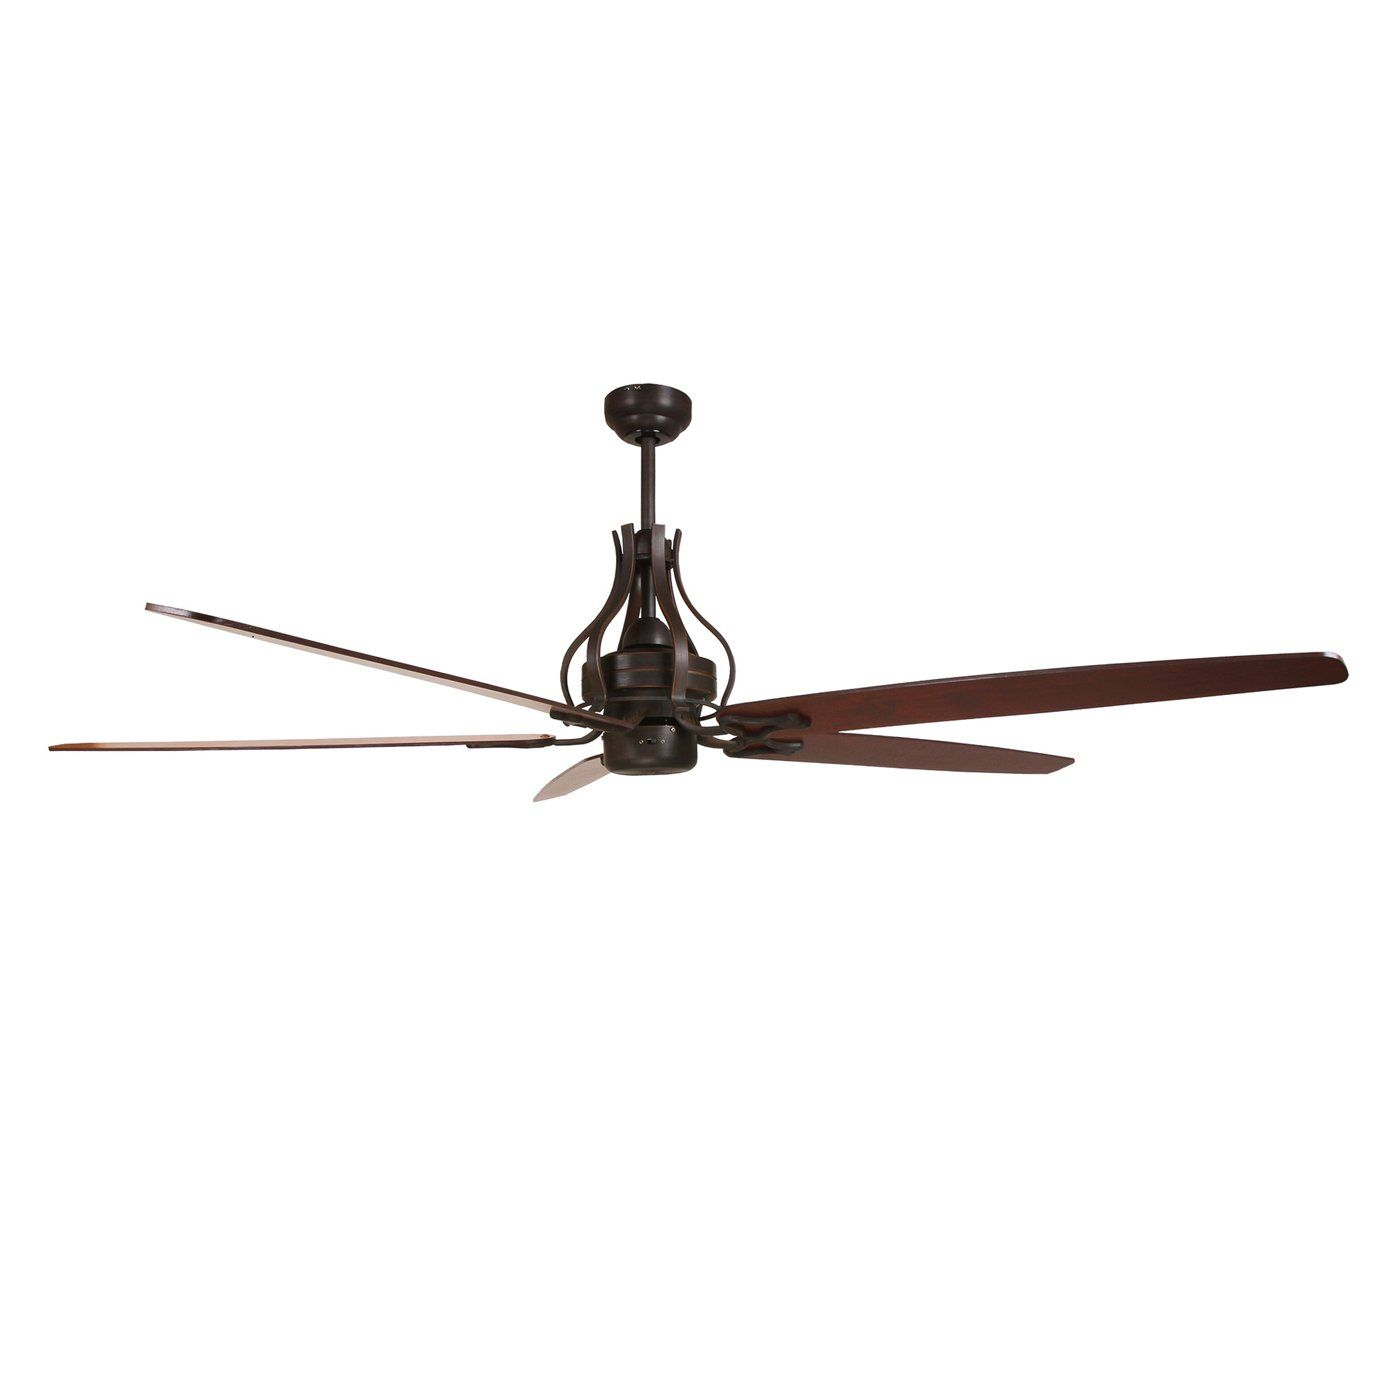 lighting dragonfly gray nickel satin transitional patio canv fan in ceiling water quorum qr resistant with finish